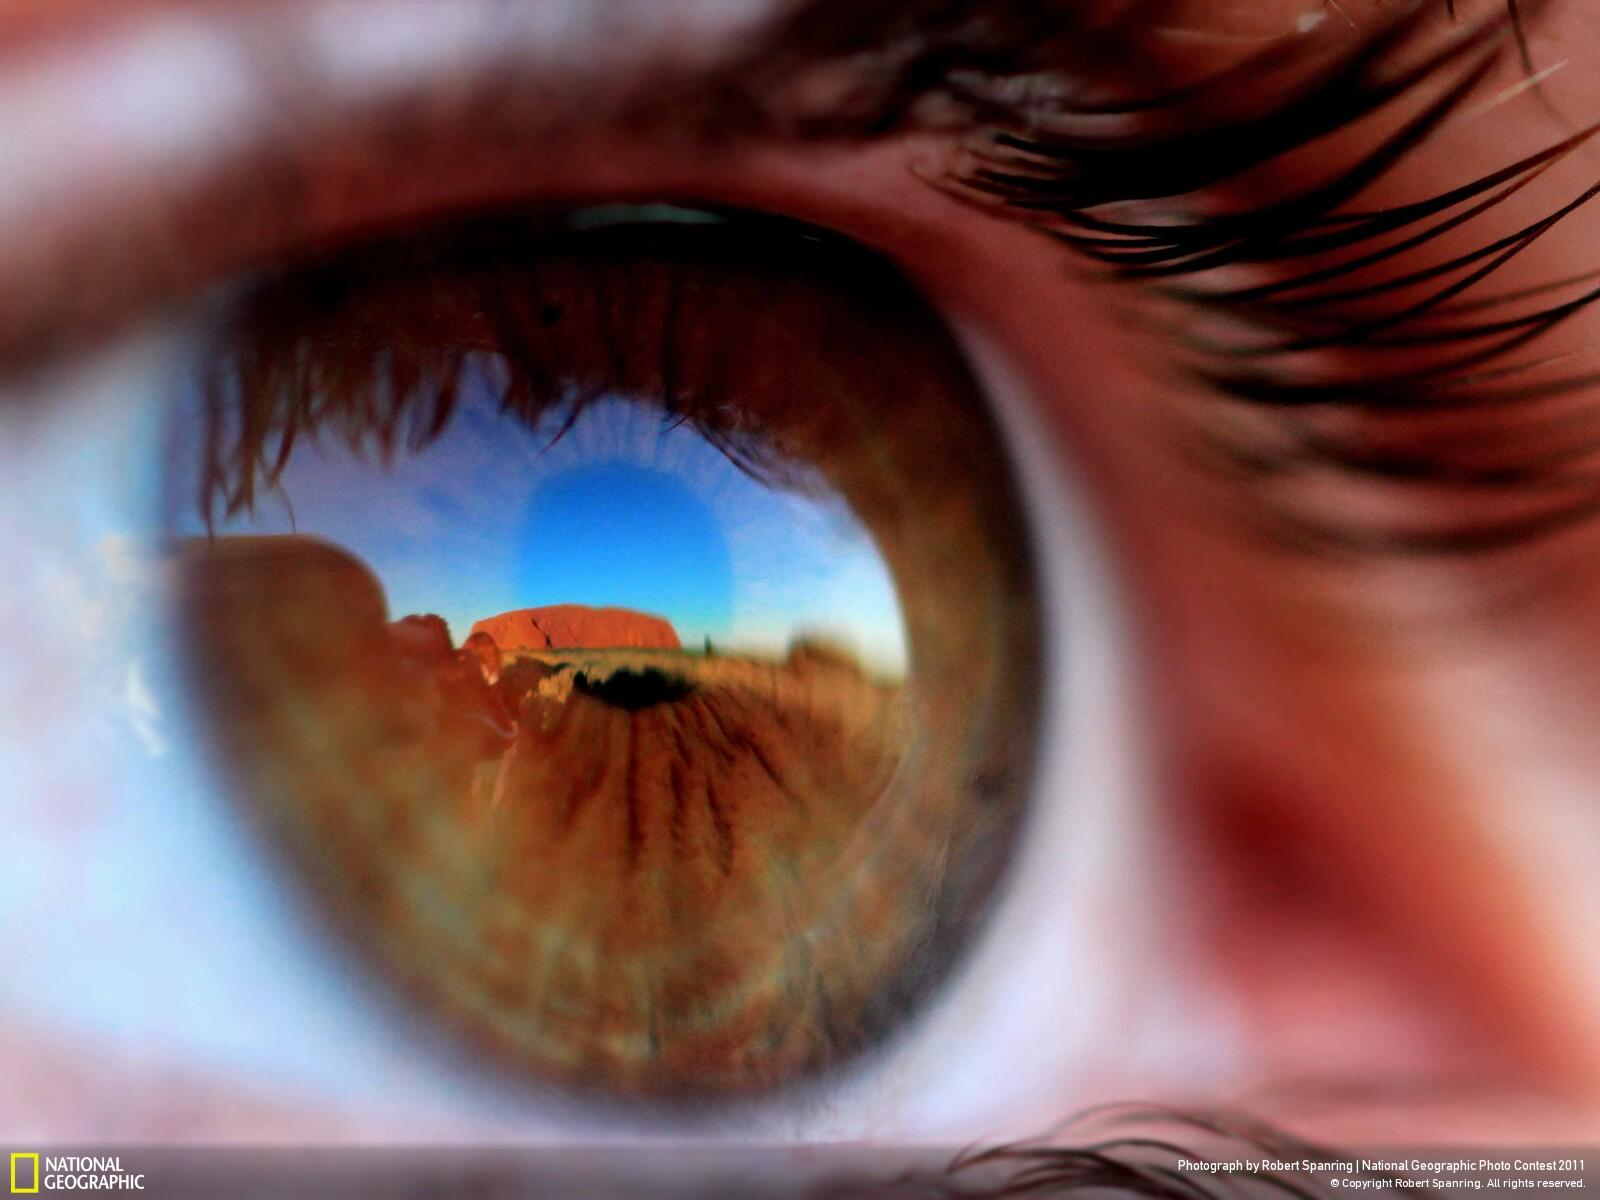 Traveller Sees Australia's Uluru (Ayers Rock) for the First Time http://t.co/82YnaW72e1